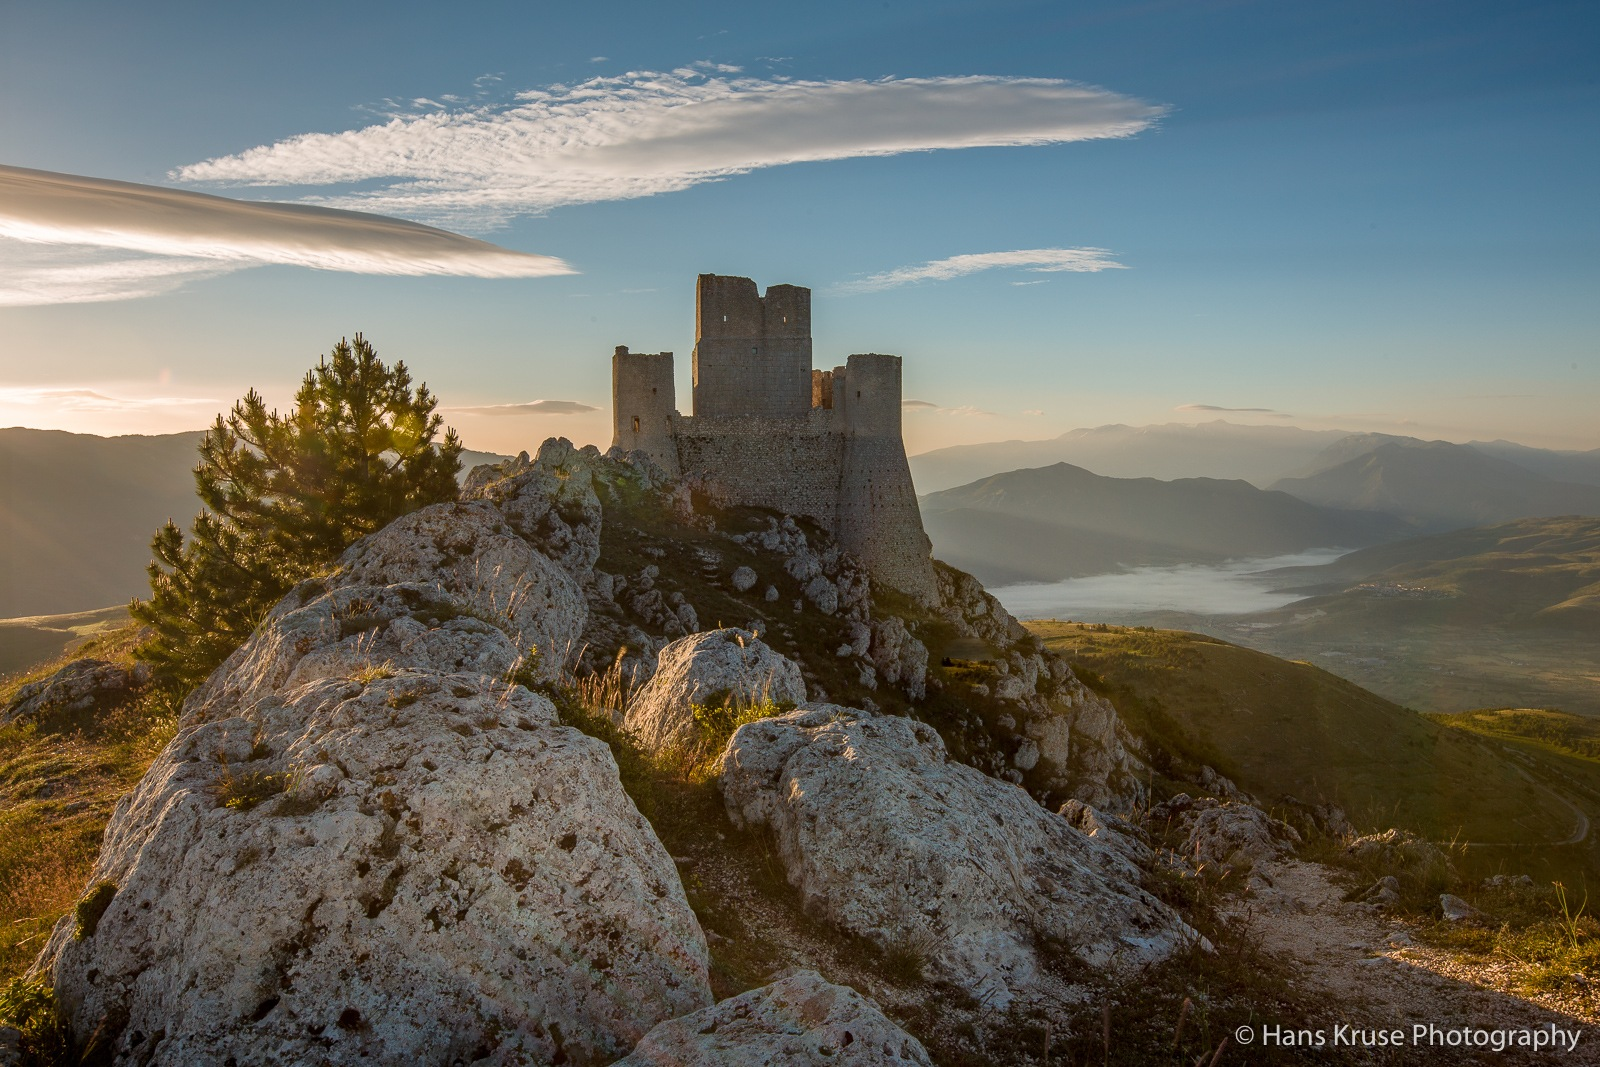 The old castle  by Hans Kruse